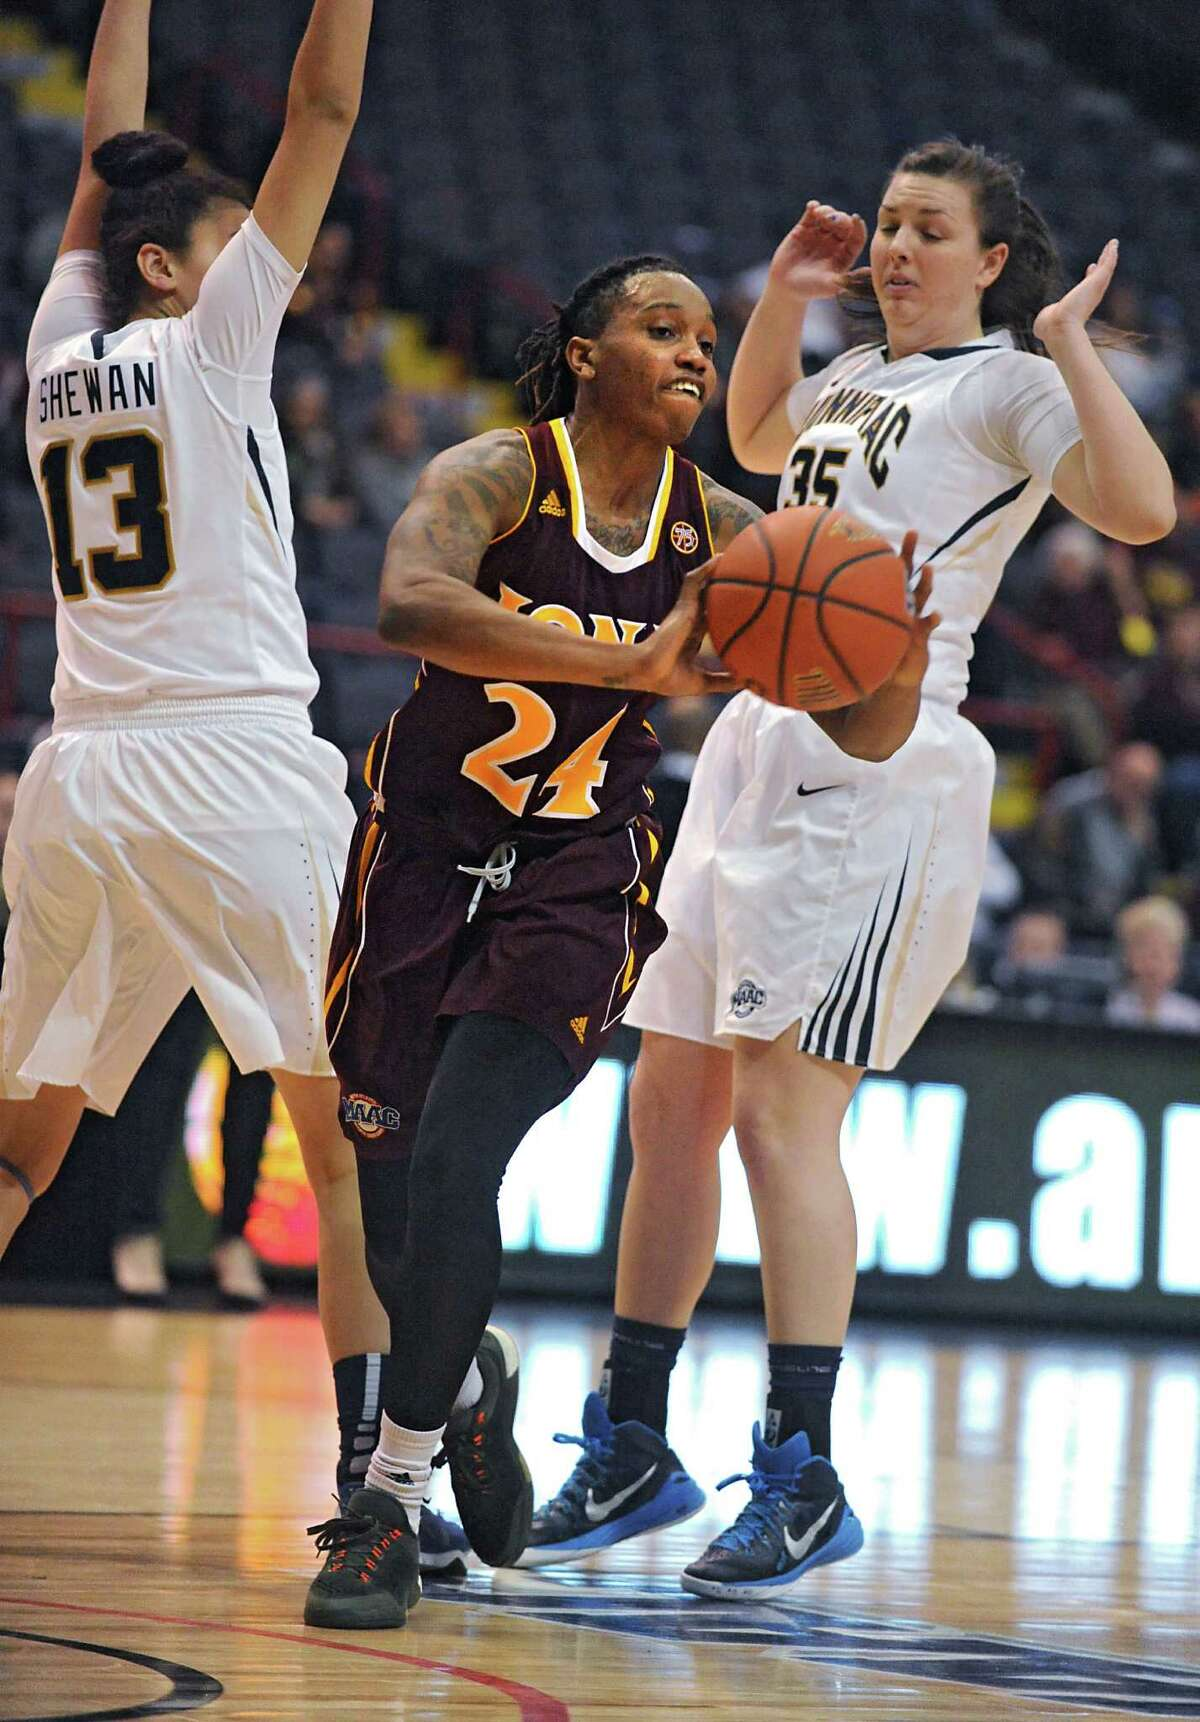 Iona's Joy Adams, center, is able to get a pass off as she is heavily covered by Quinnipiac's Sarah Shewan, left, and Morgan Manz in the MAAC women's championship game at the Times Union Center on Monday, March 7, 2016 in Albany, N.Y. (Lori Van Buren / Times Union)